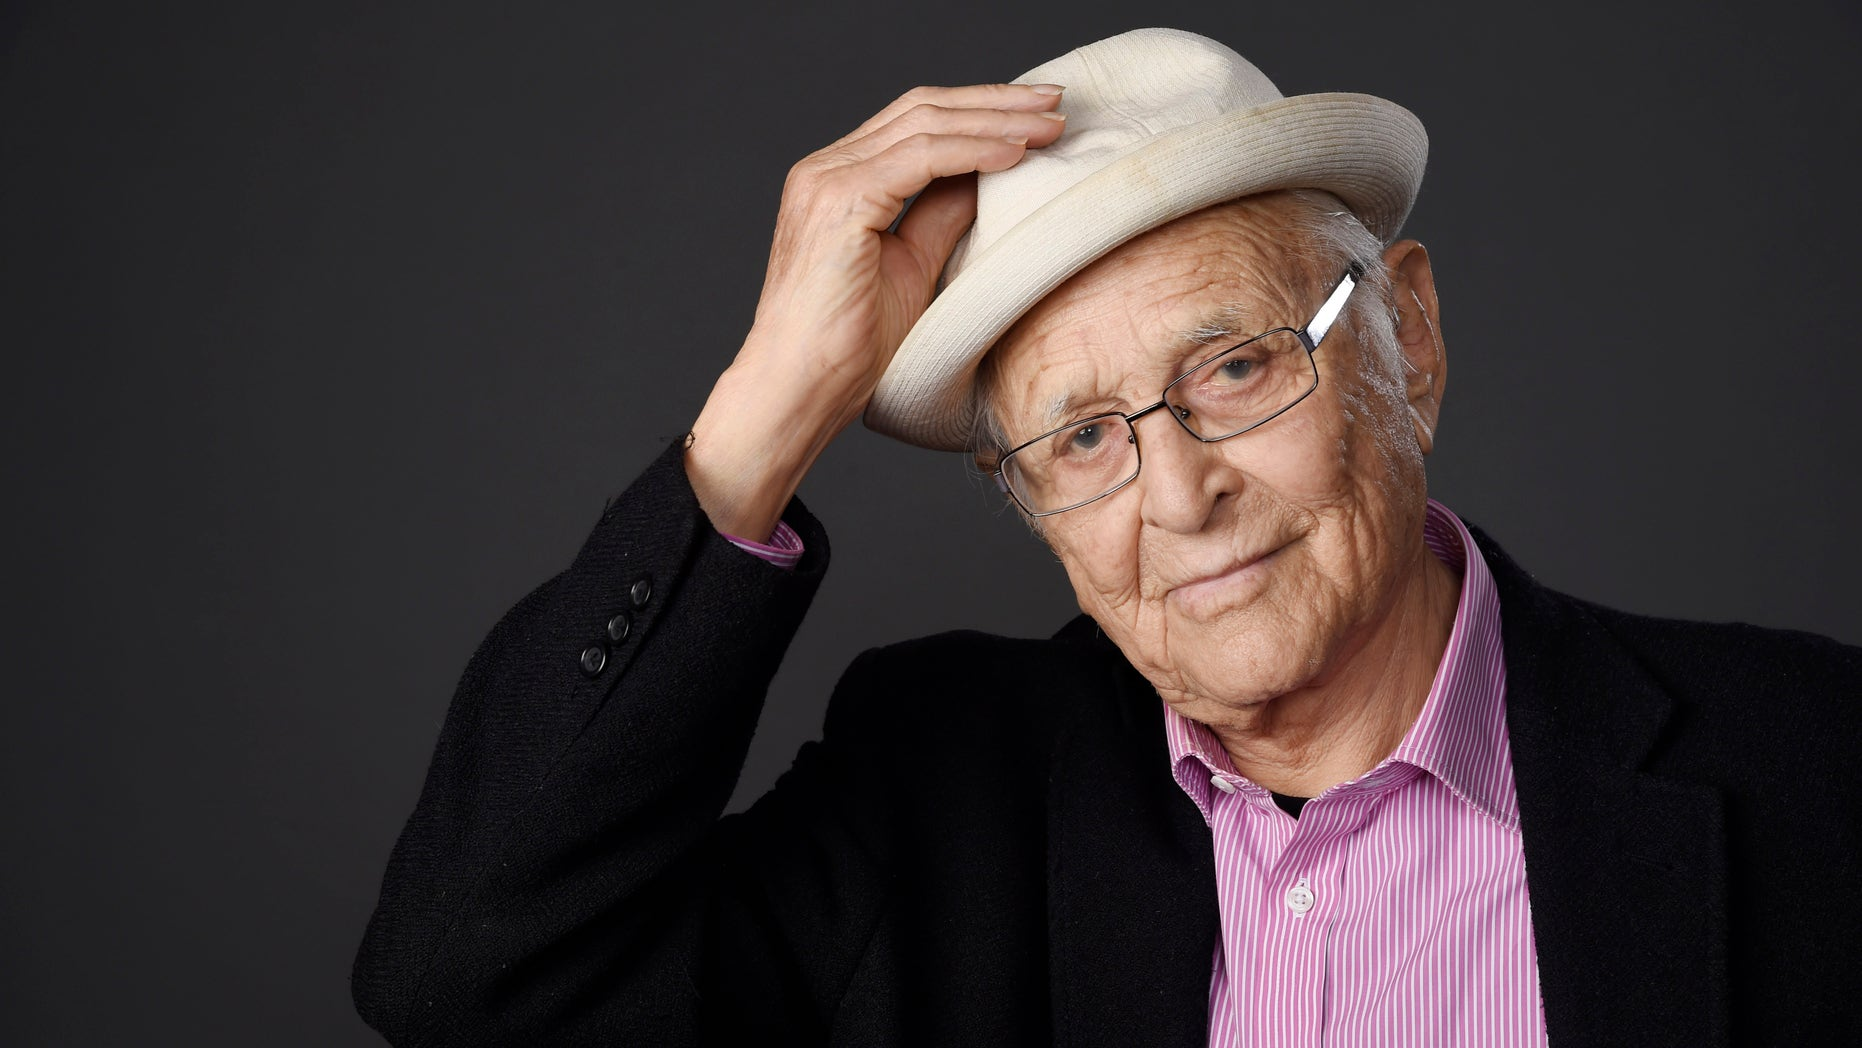 """Television writer and producer Norman Lear, the subject of an """"American Masters"""" documentary that will air on PBS in 2016, poses for a portrait during the 2015 Television Critics Association Summer Press Tour at the Beverly Hilton on Saturday, Aug. 1, 2015, in Beverly Hills, Calif. (Photo by Chris Pizzello/Invision/AP)"""